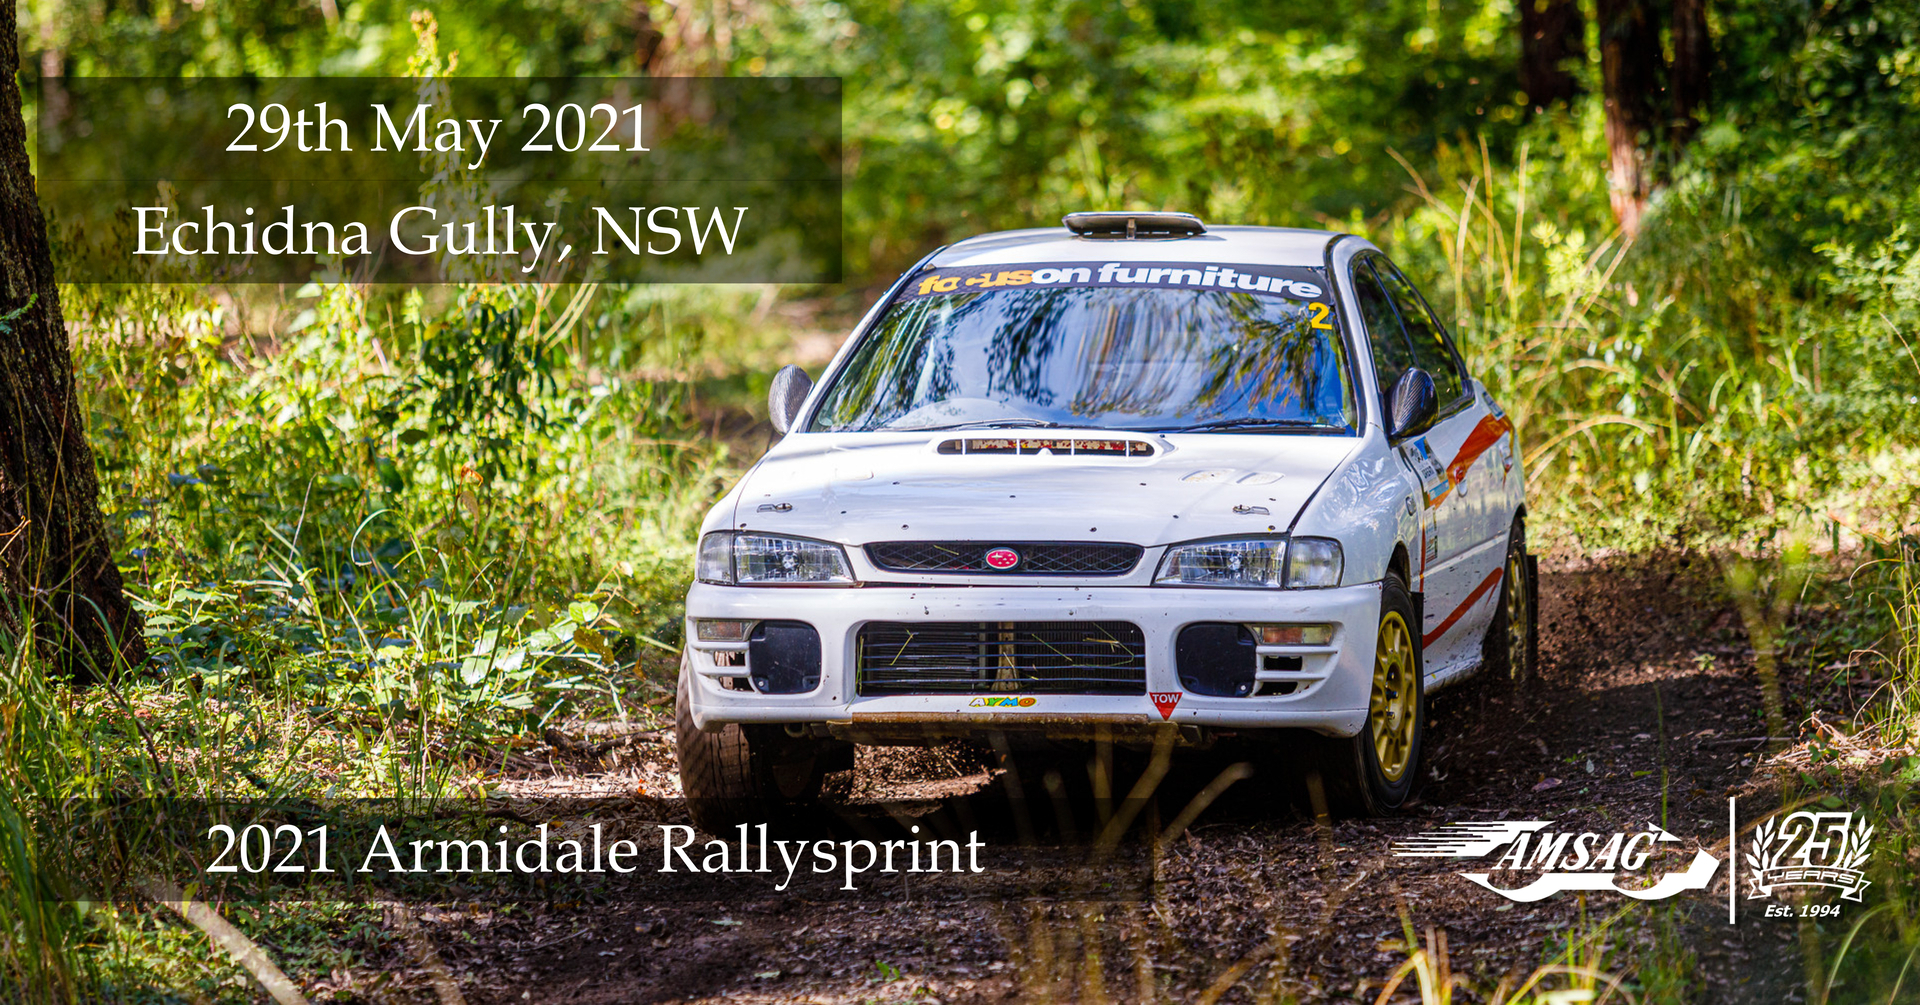 Entries are now open for the 2021 Armidale Rallysprint. Head to the AMSAG Blog Post for more details.